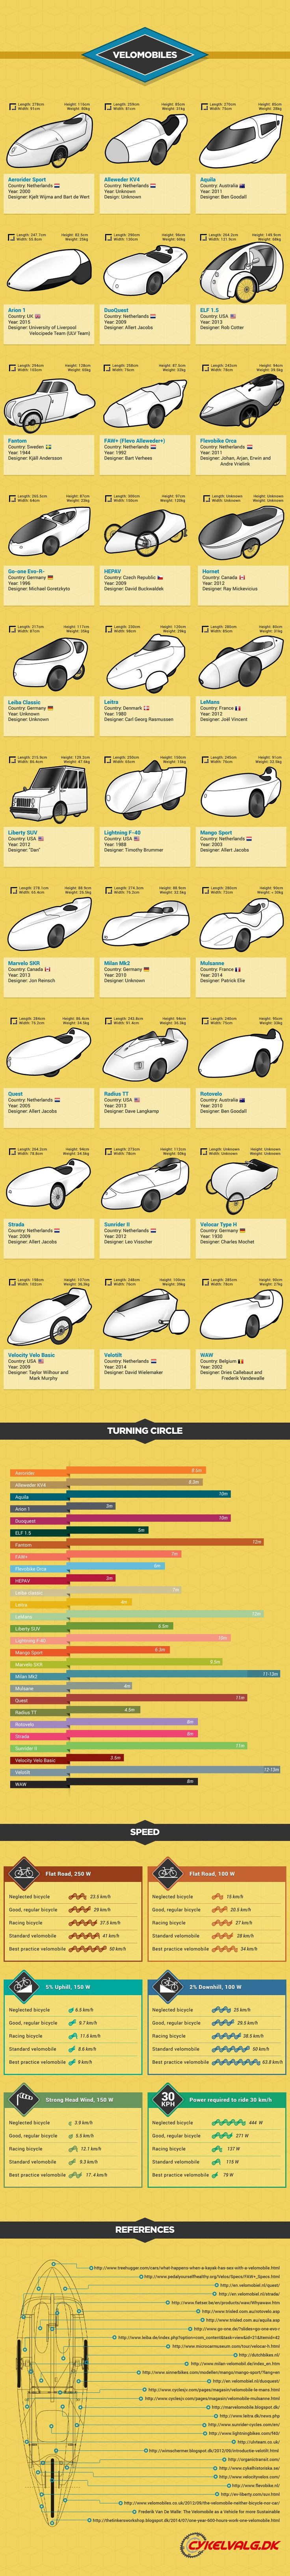 16 Best Bicicletta Images On Pinterest Android Campaign And Content Cozy Trike Wiring Diagram For 27 Classic Velomobiles From 1930 To 2015 Infographic